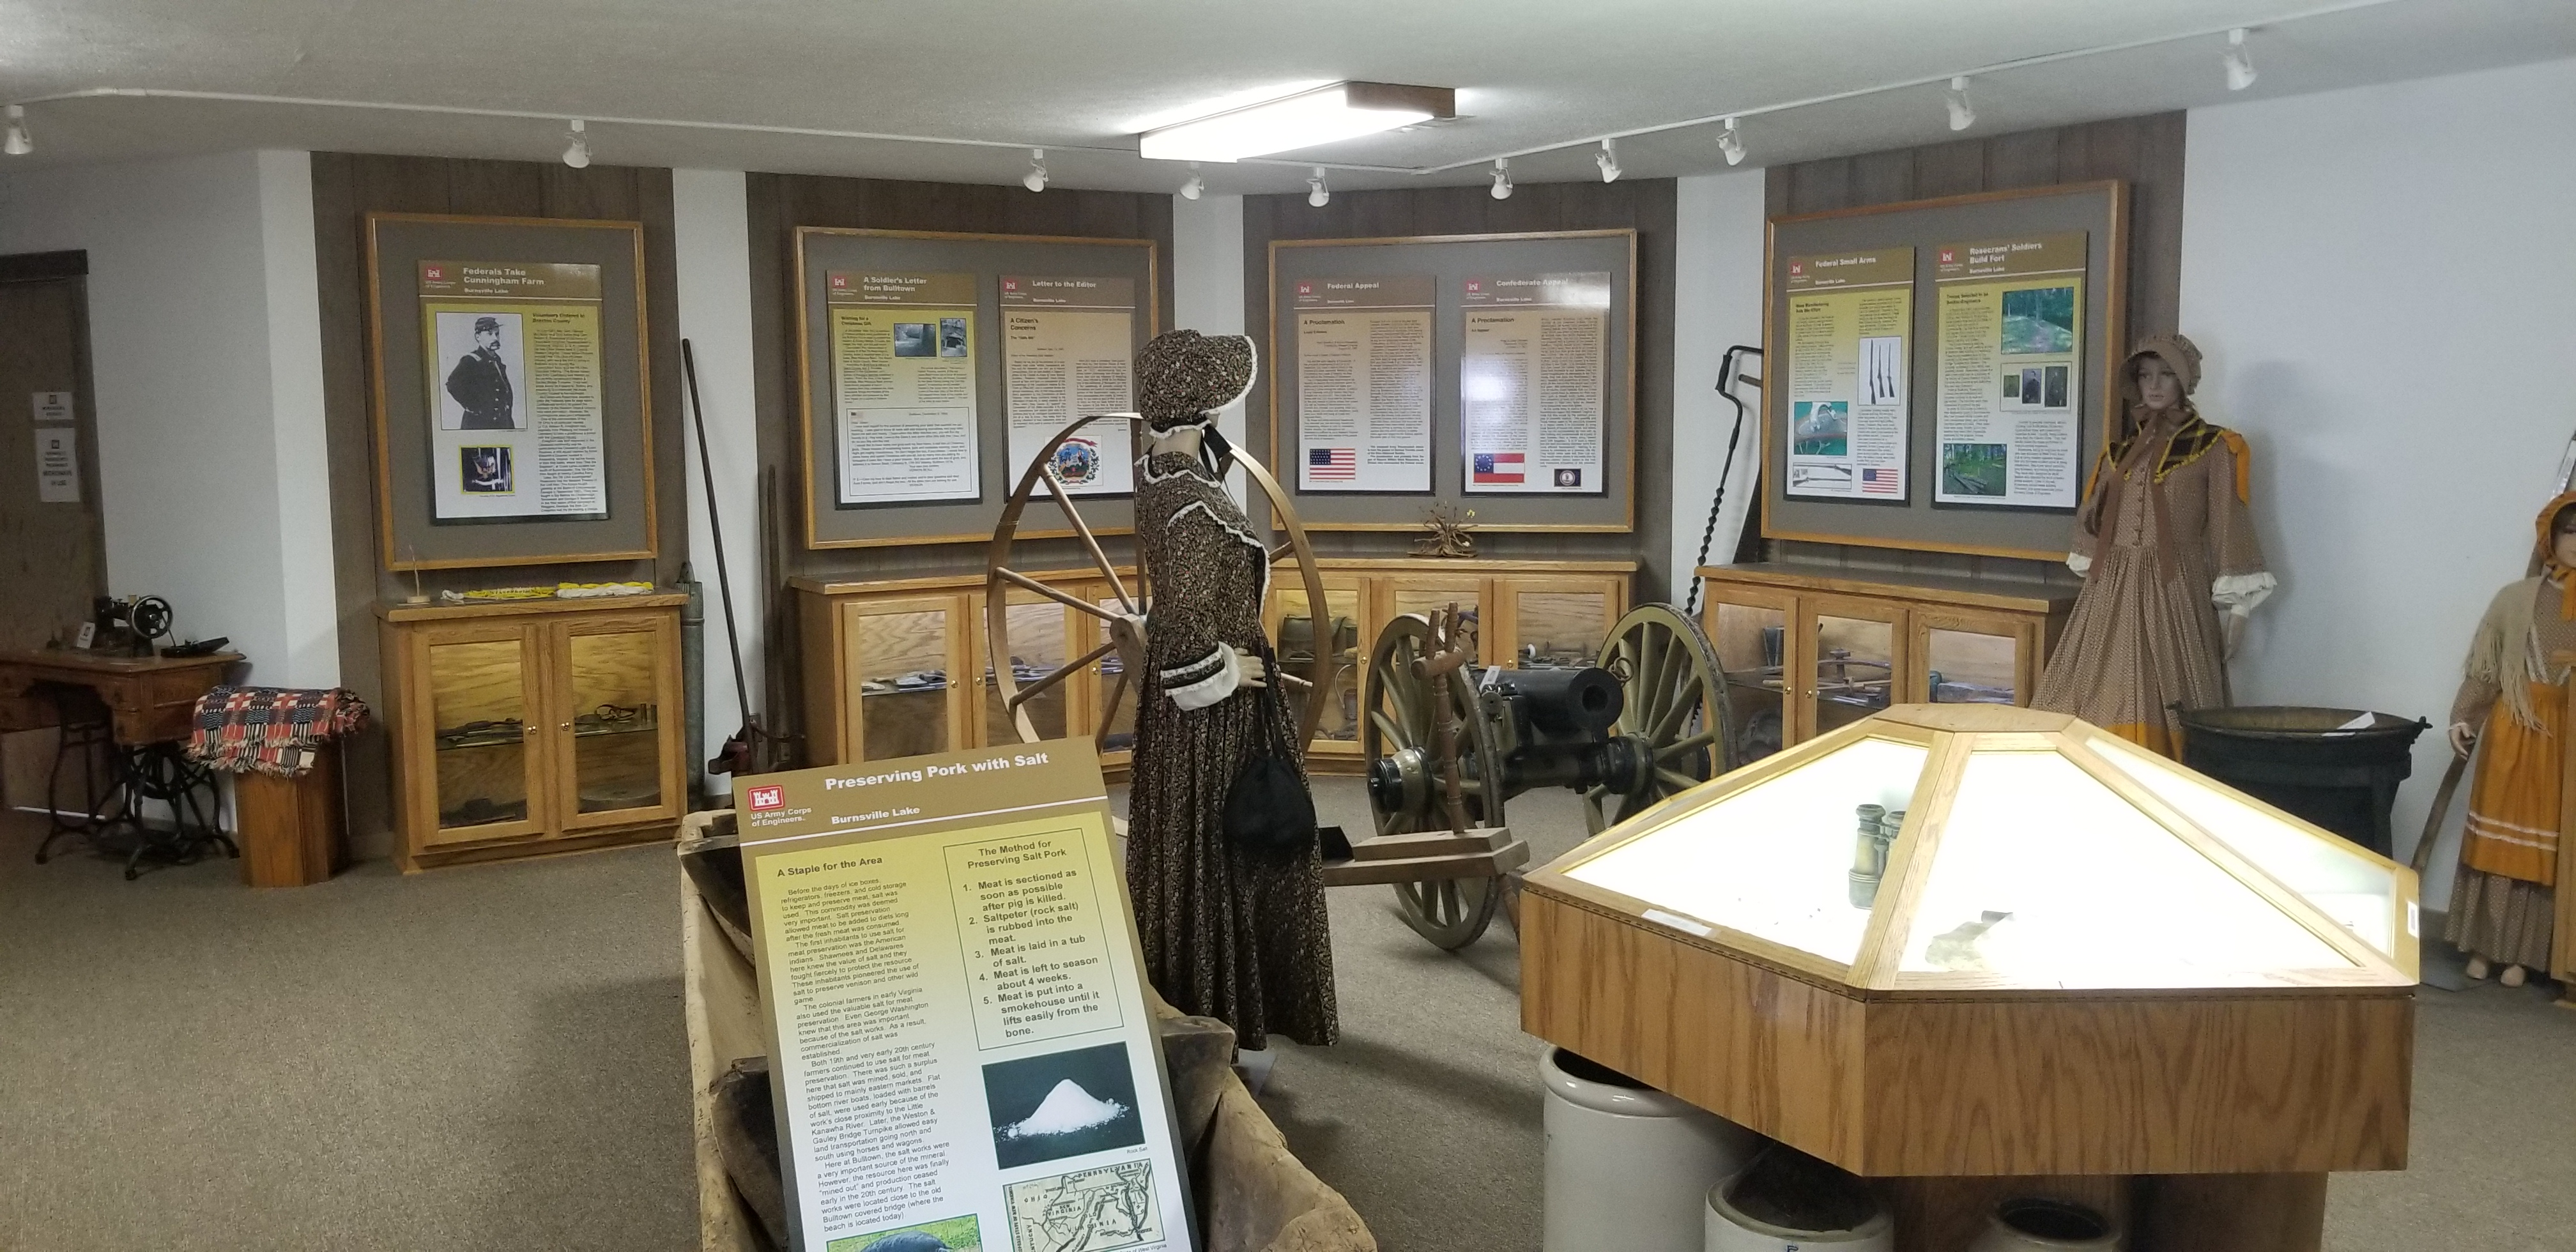 There are multiple displays of Civil War Artifacts, Summaries, Weapons, Ammo, Clothing, Tools, and Other Items from Bulltown.